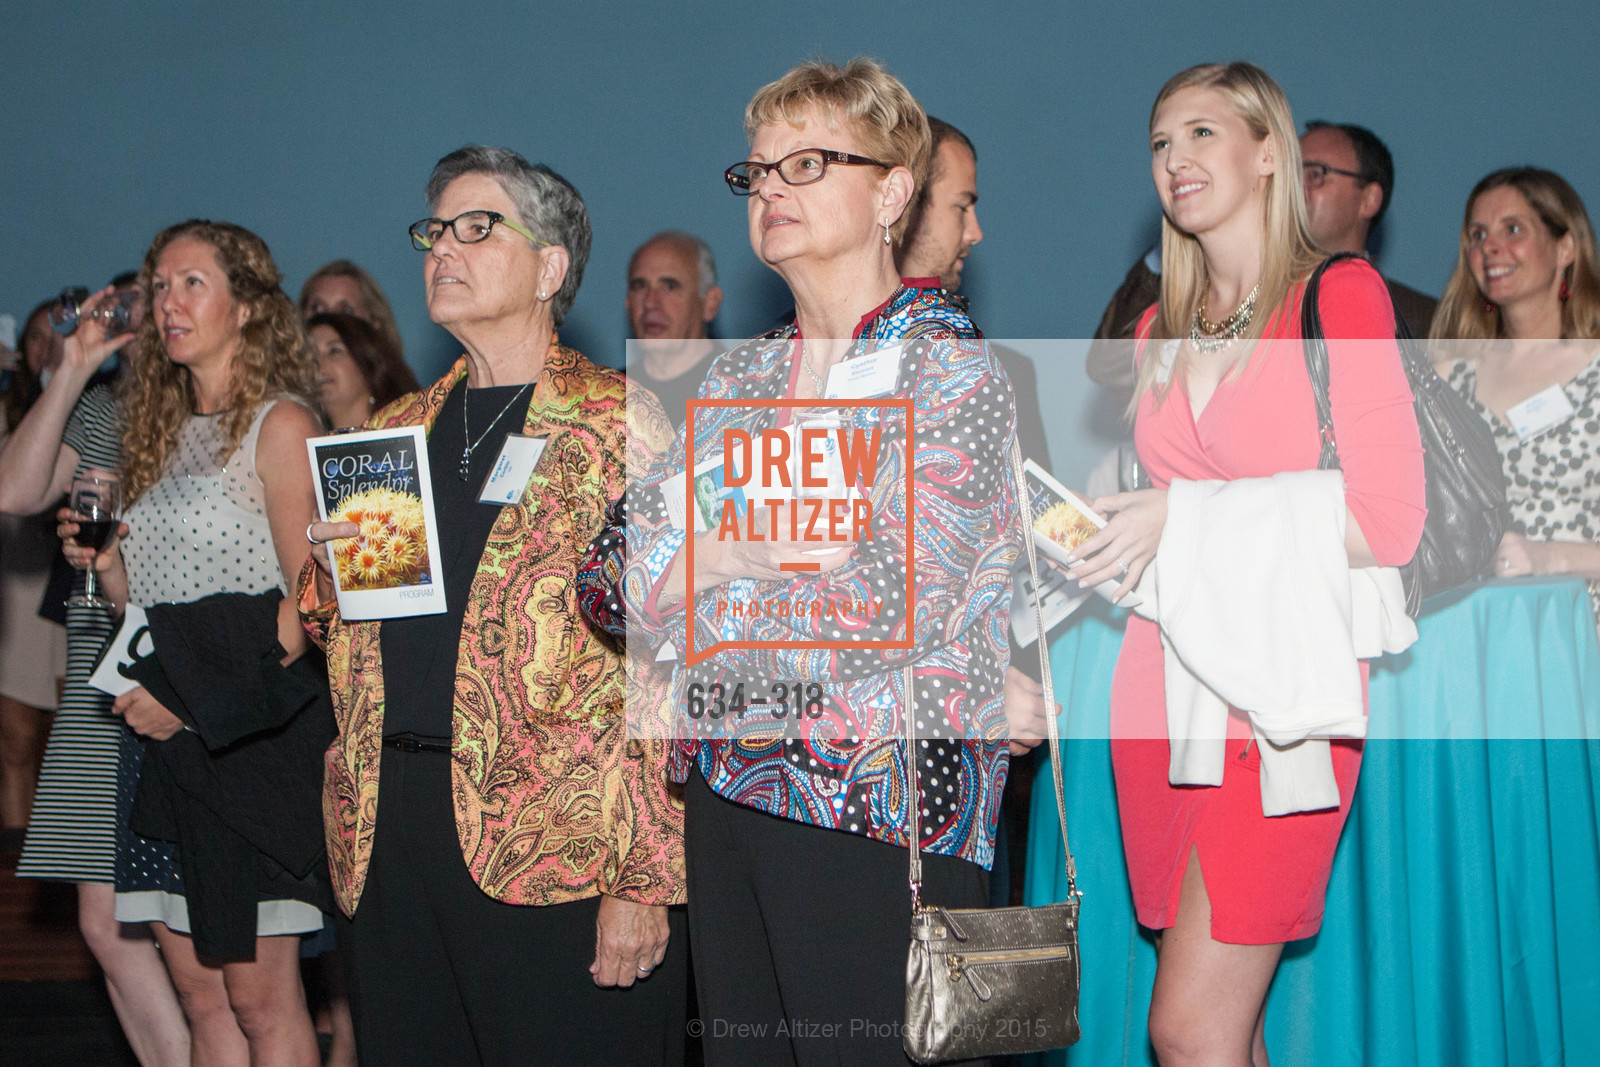 Maggie Corbin, Cindy Stewart, Coral Reef Alliance at the California Academy of Sciences, Academy of Sciences, September 26th, 2015,Drew Altizer, Drew Altizer Photography, full-service agency, private events, San Francisco photographer, photographer california